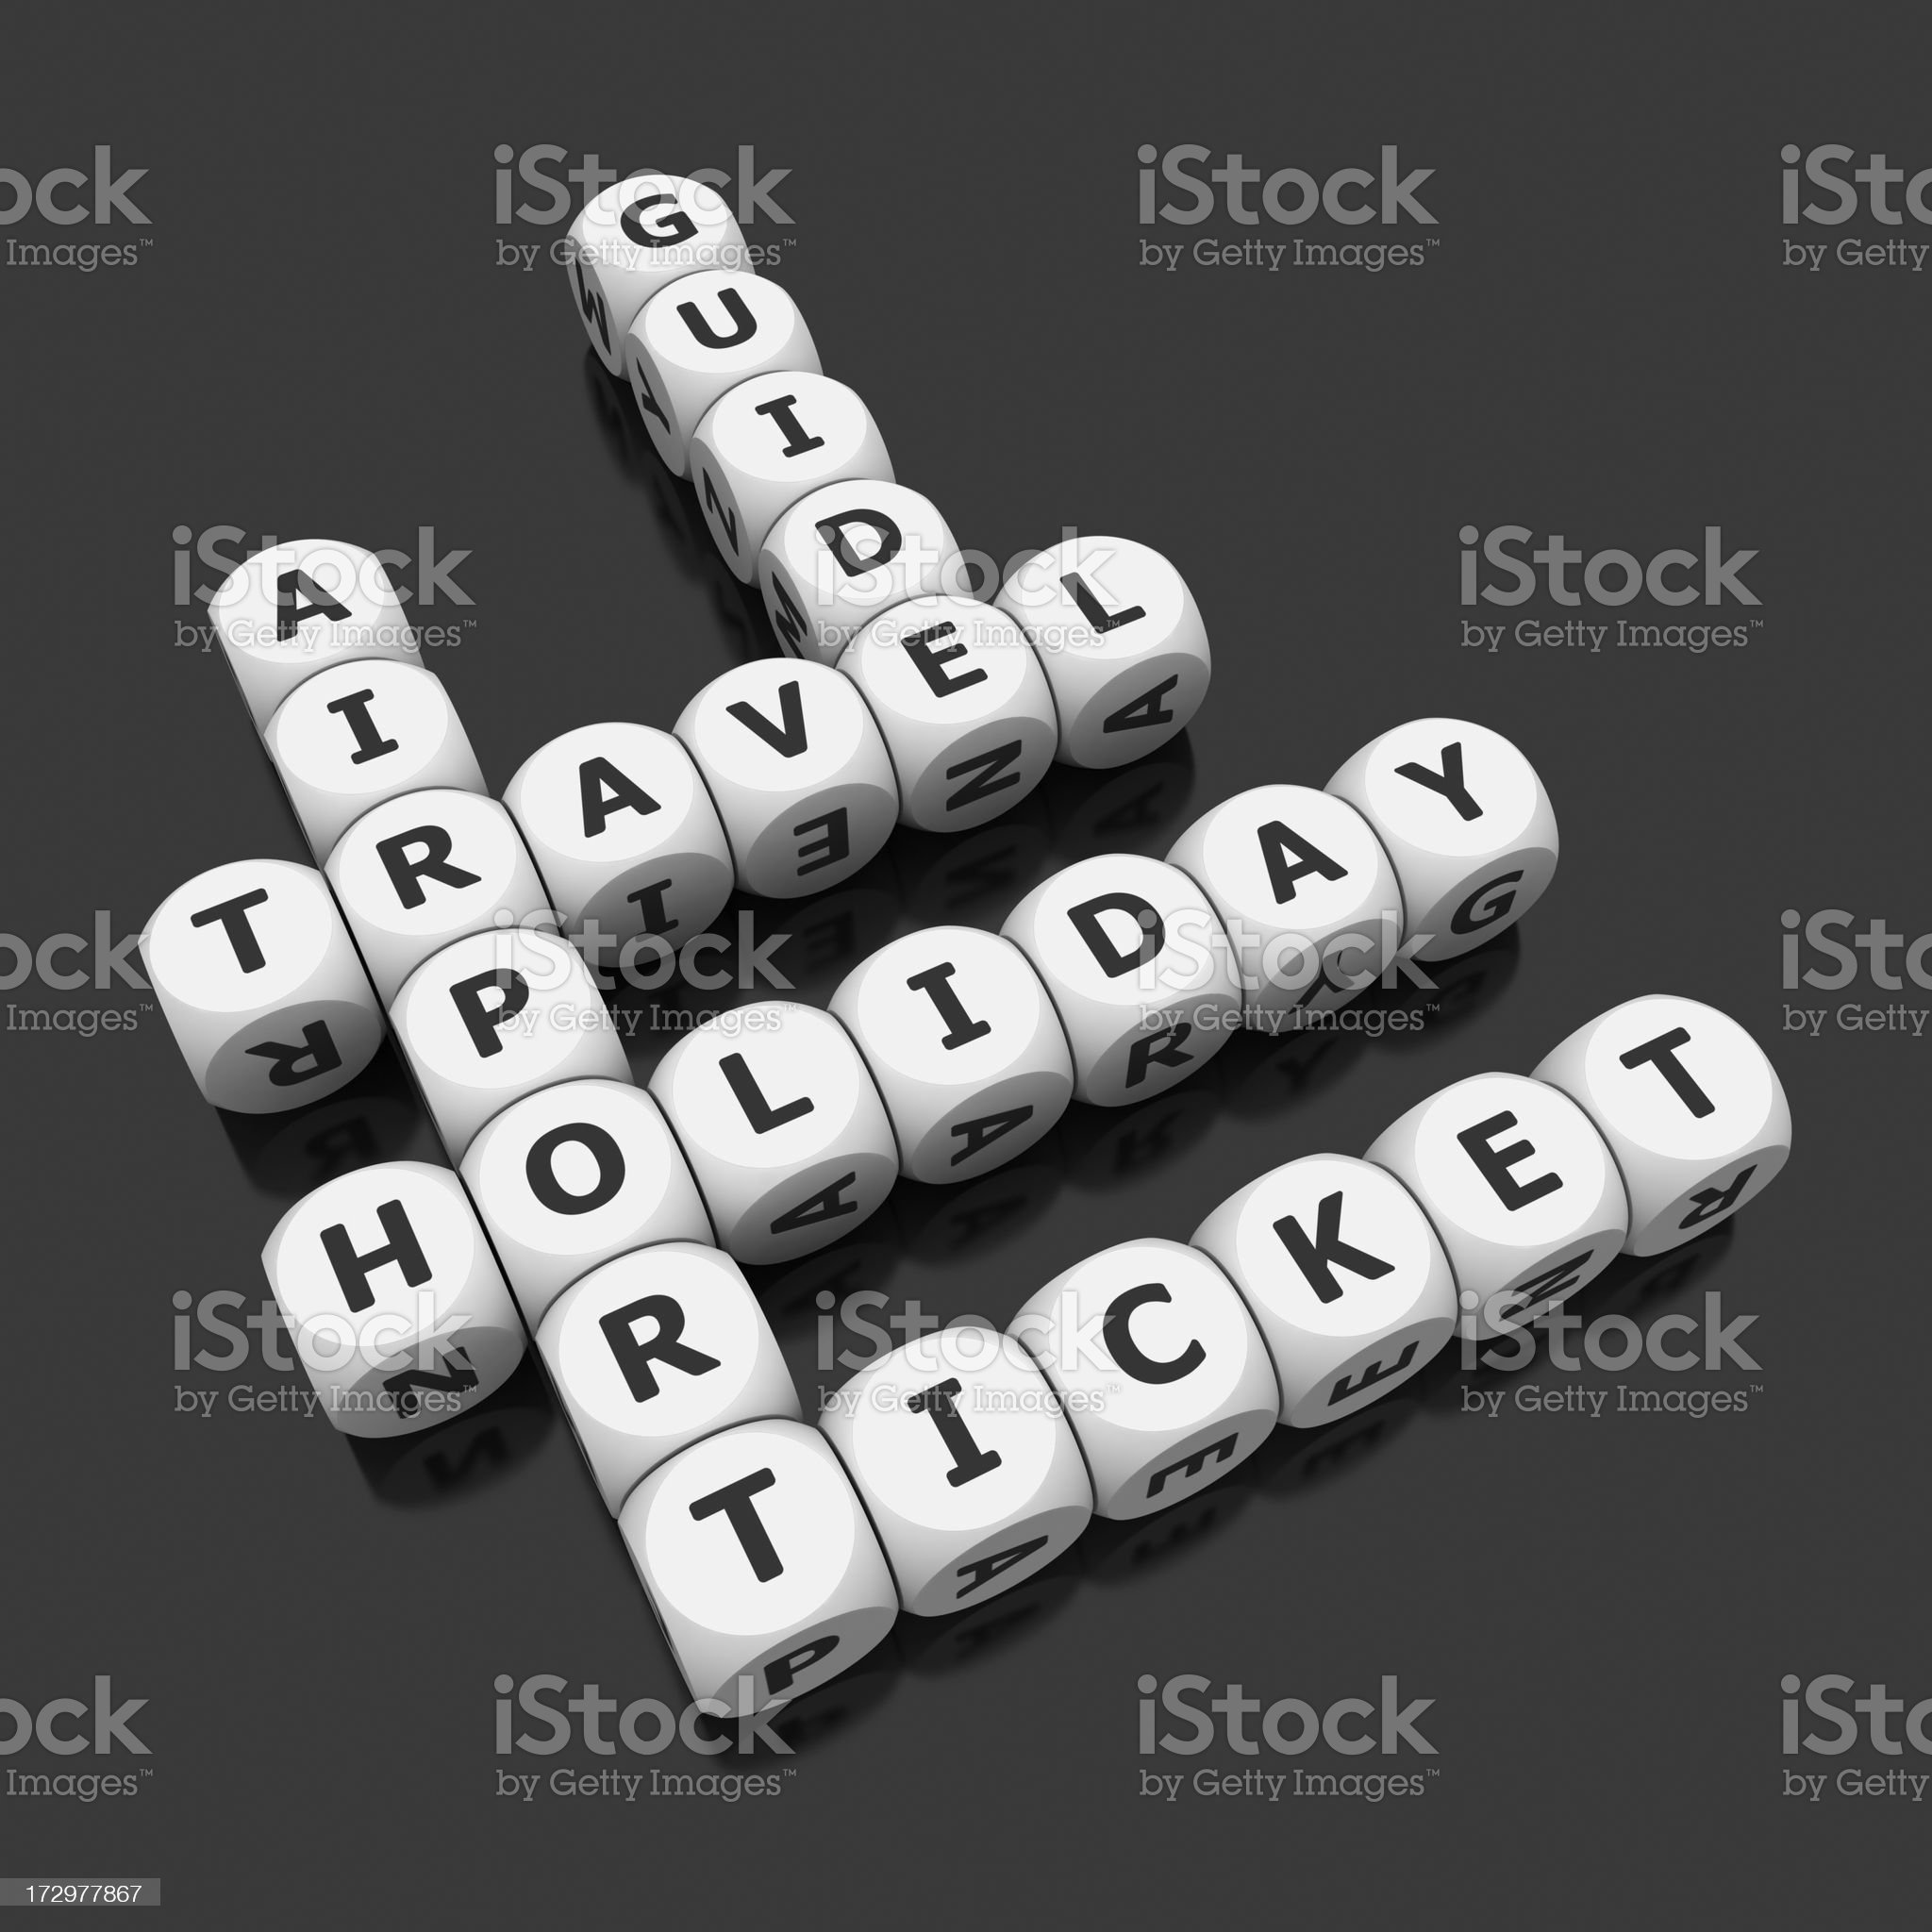 travel crosswords on dices royalty-free stock photo